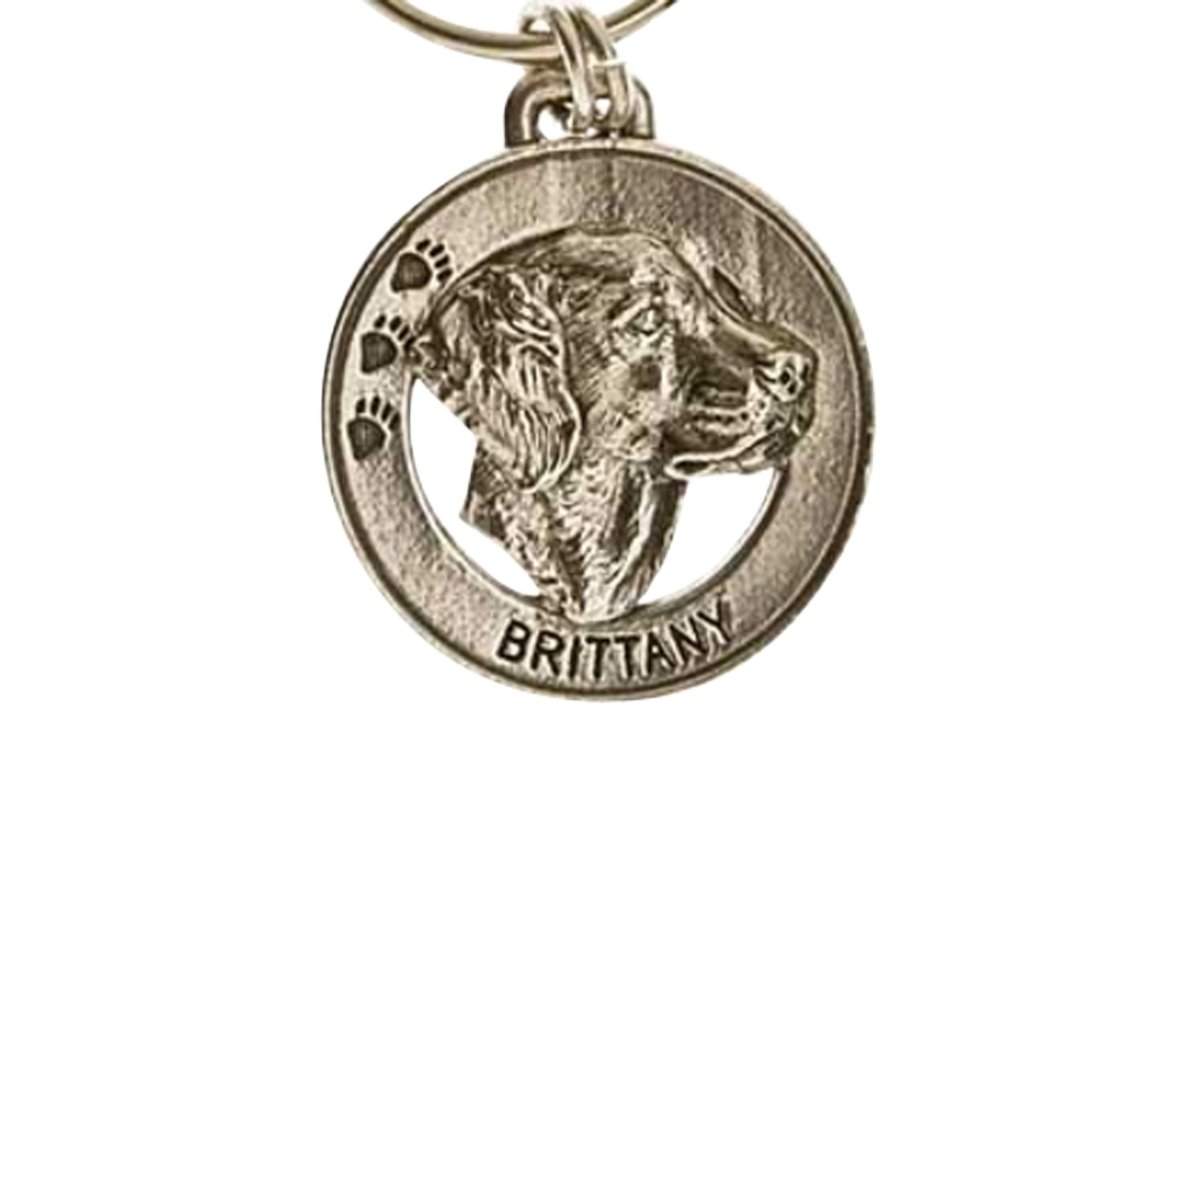 Creative Pewter Designs, Pewter Brittany Key Chain, Antiqued Finish, DK038